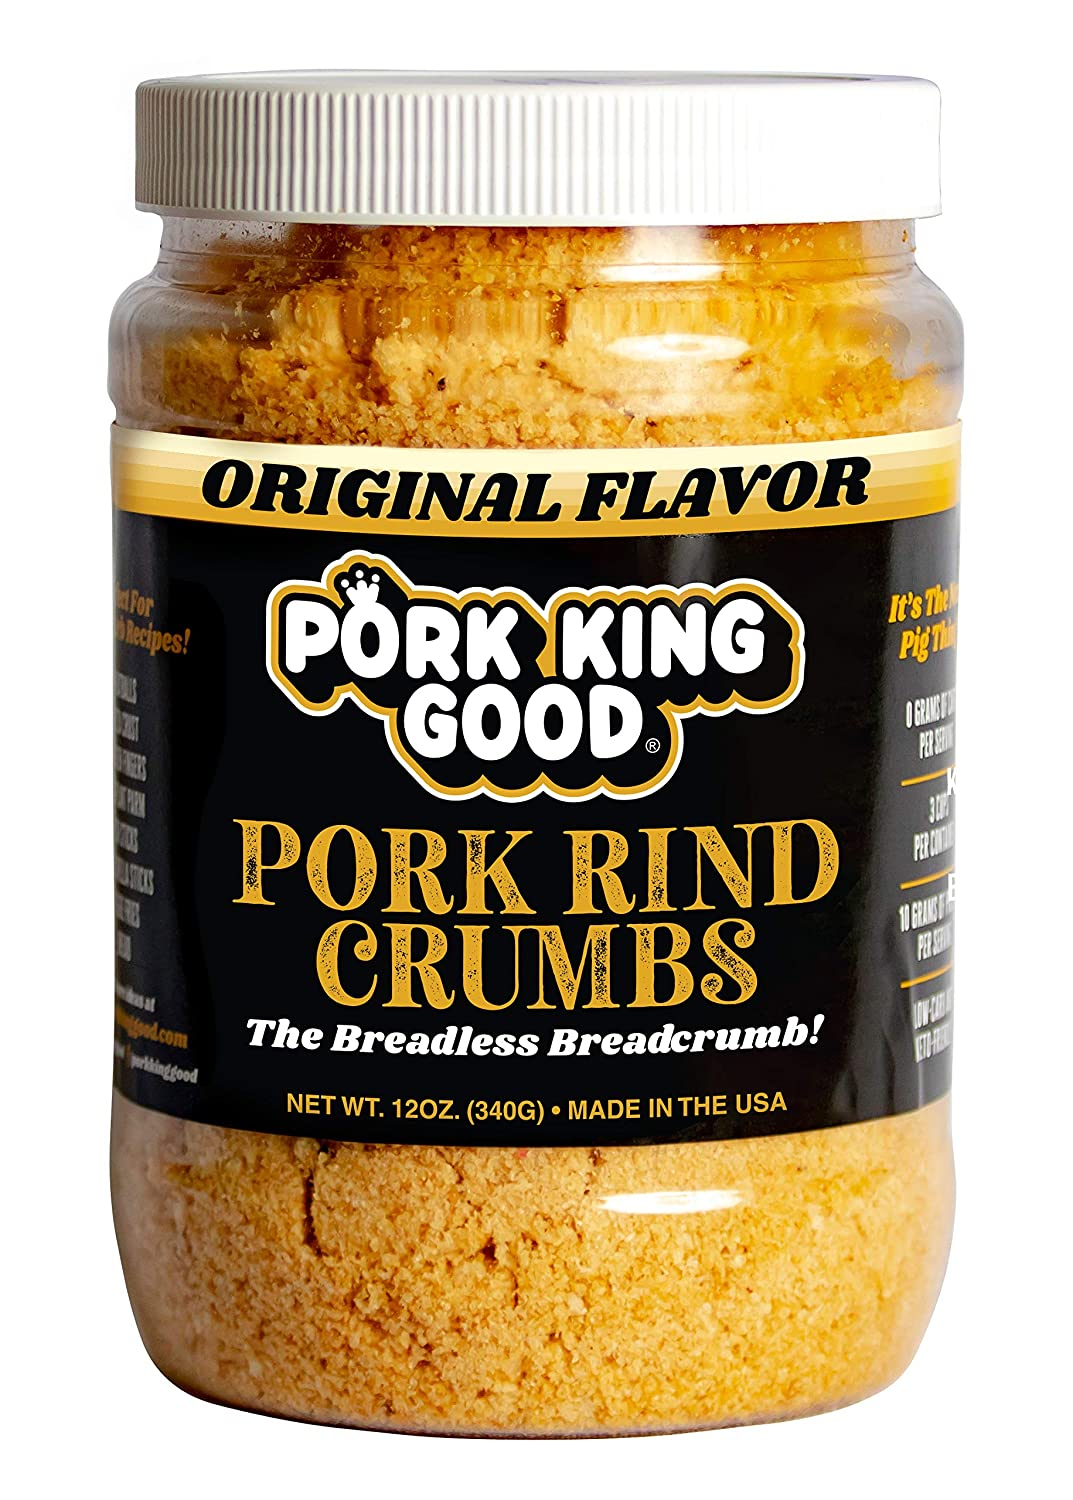 Pork King Good Low Carb Keto Diet Pork Rind Breadcrumbs! Perfect For Ketogenic, Paleo, Gluten-Free, Sugar Free and Bariatric Diets (Original) (Original, 12 Oz Jar)